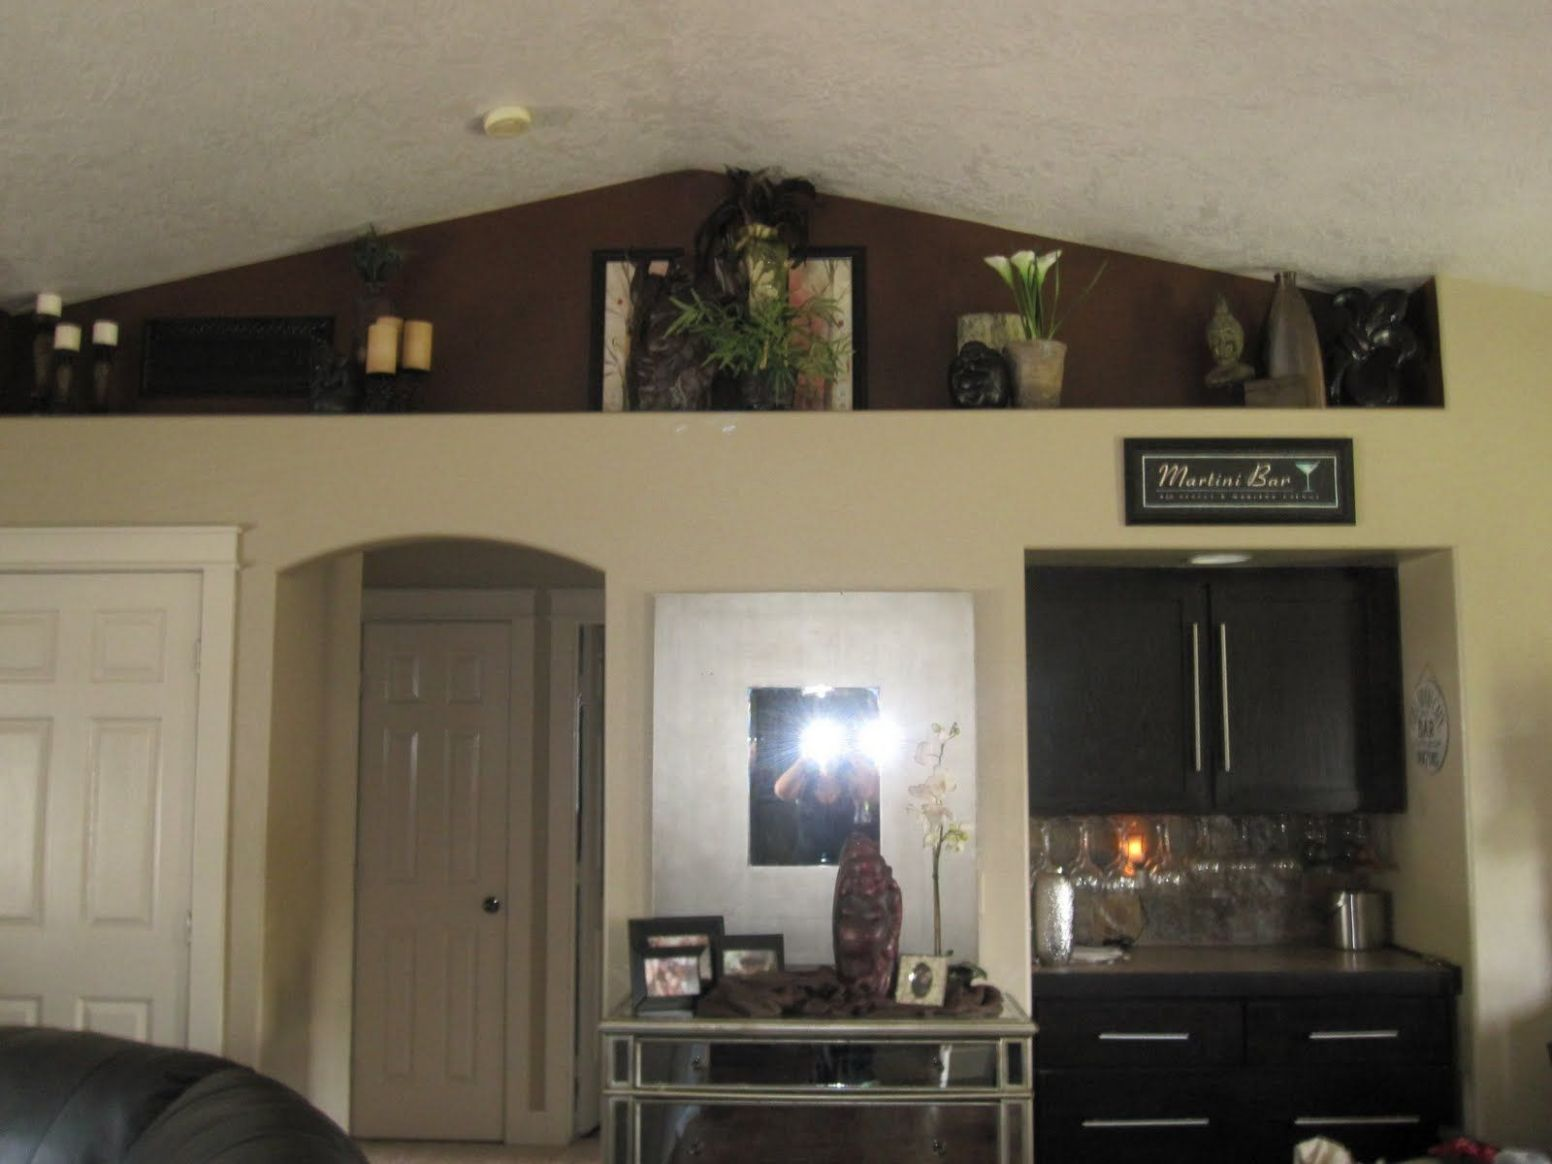 Our Home... A Little Preview | Vaulted ceiling living room, Shelf ..